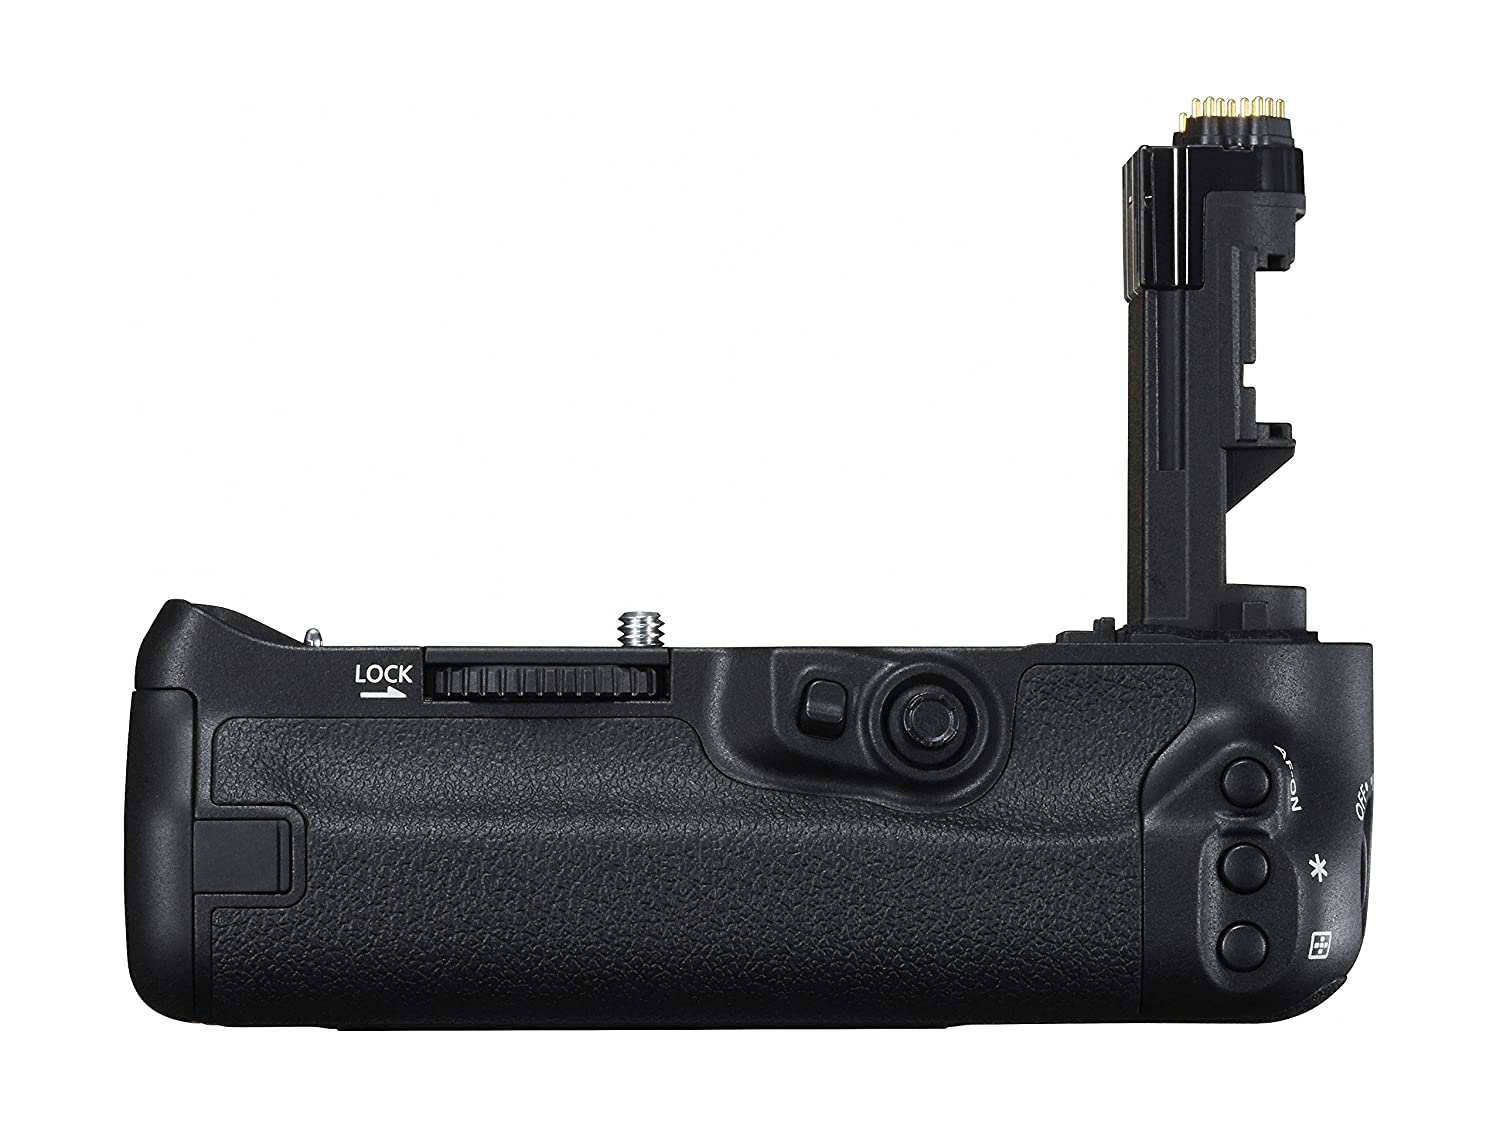 Buy Canon BG-E16 Battery Grip for EOS 7D Mark II Online at